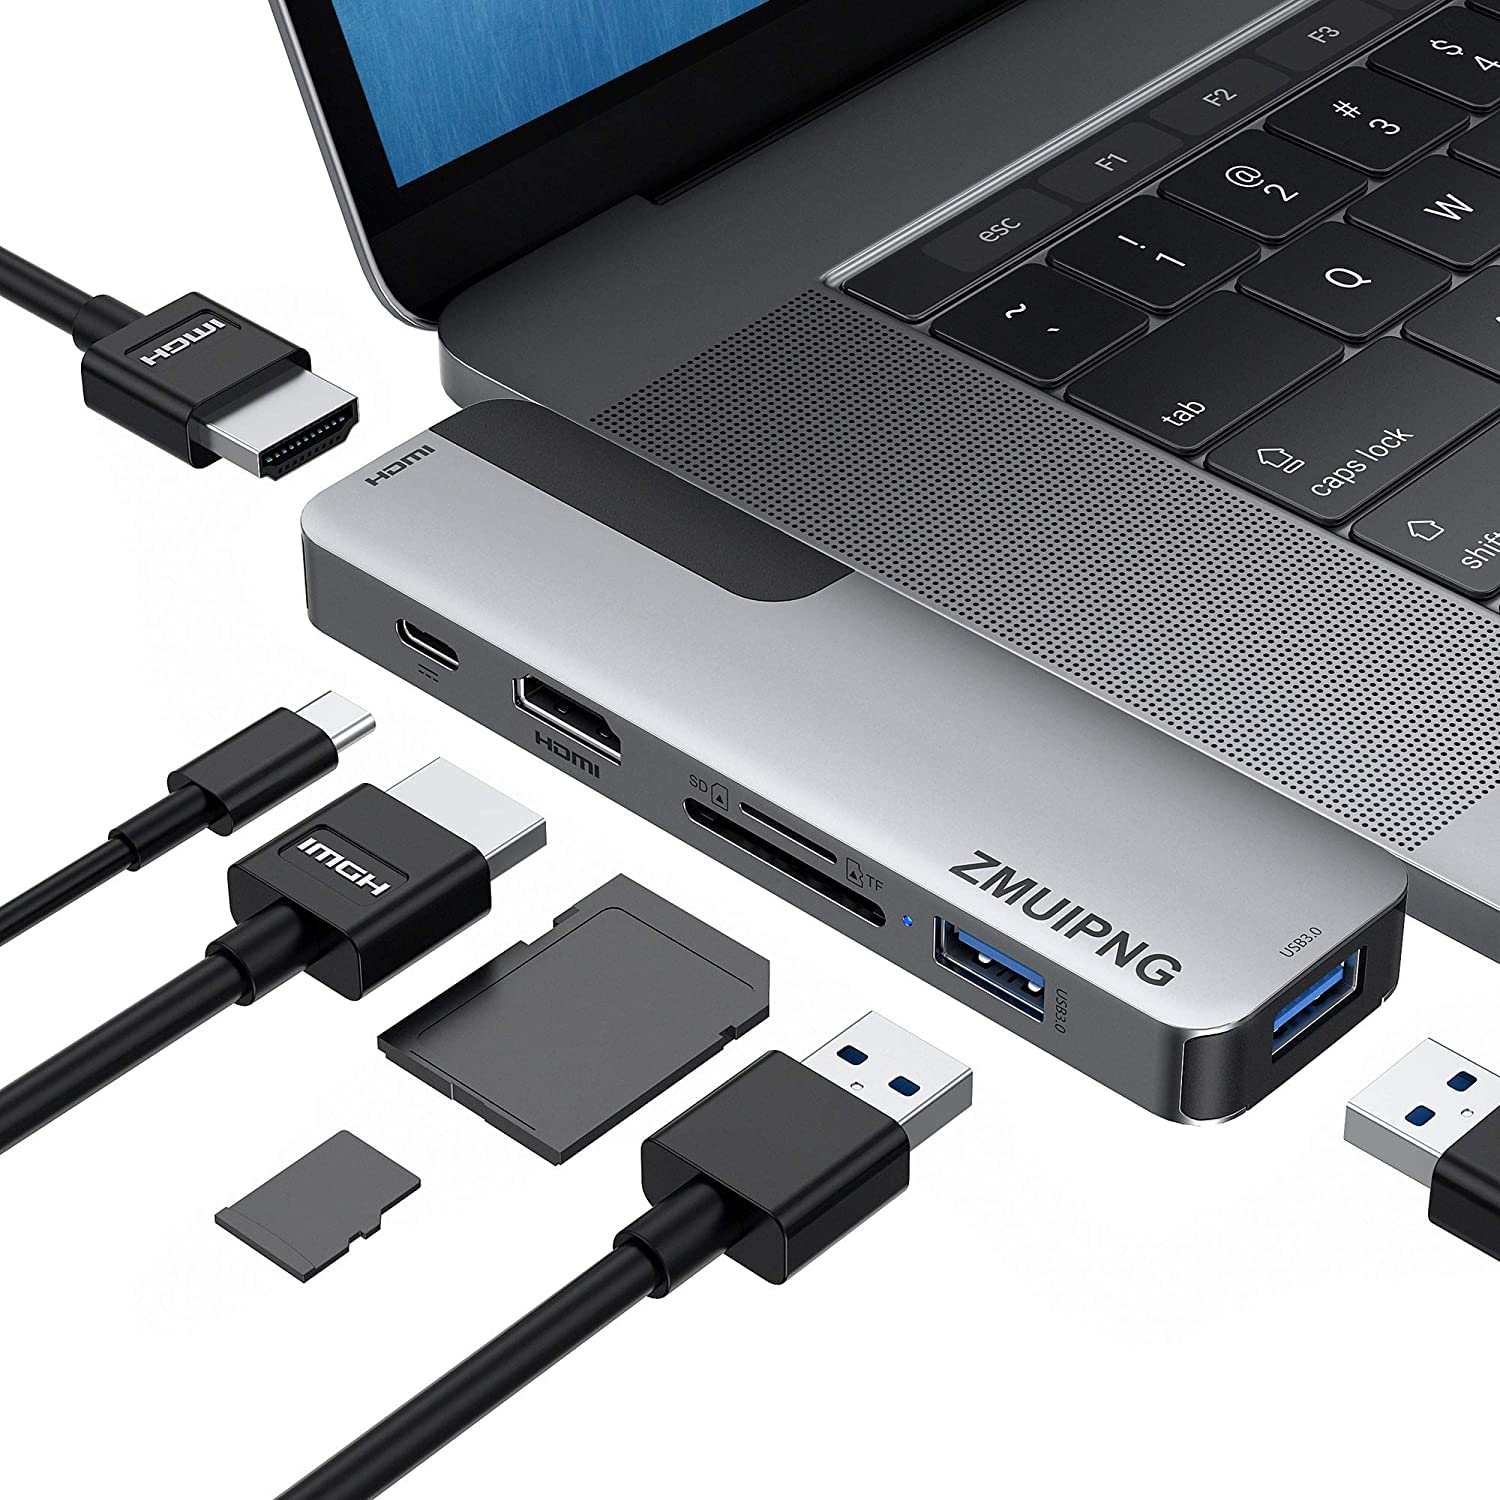 SD//Micro SD Card Reader MacBook Pro USB Adapter HDMI MacBook Pro Air Multiport Adapter with 2 HDMI 4K@60hz 100W Power Delivery 2 USB 3.0 Port USB C Adapters for MacBook Pro 2020